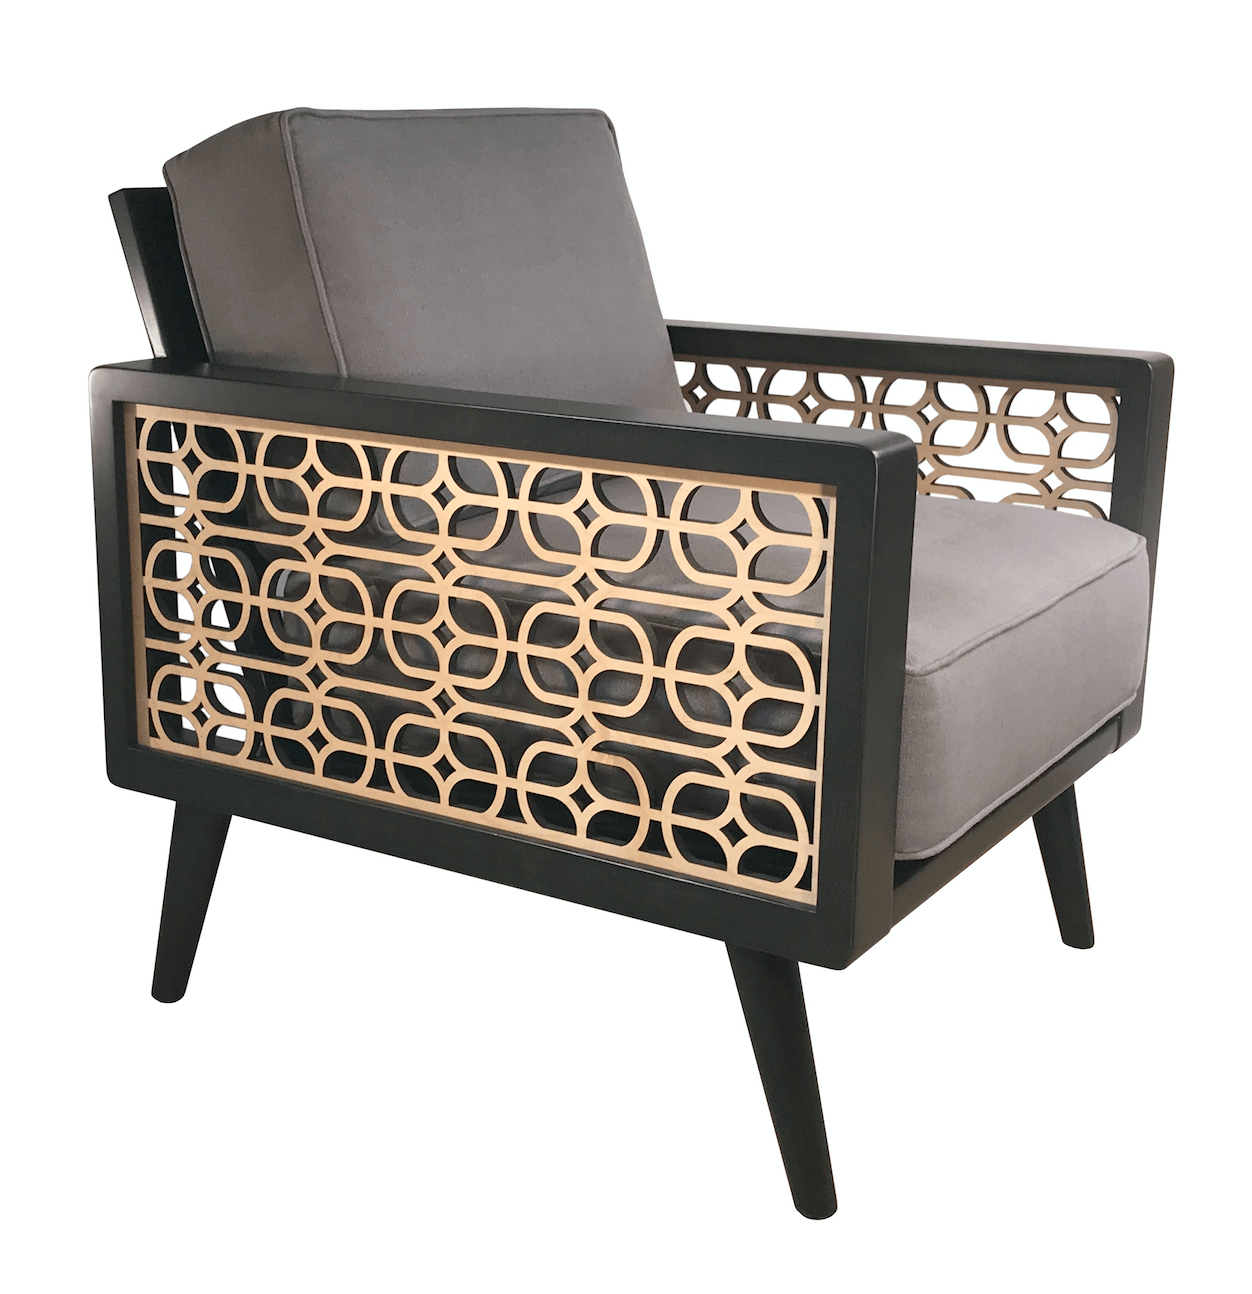 Outstanding Lounge Grille Mid Century Modern Lounge Chair Gray Gmtry Best Dining Table And Chair Ideas Images Gmtryco